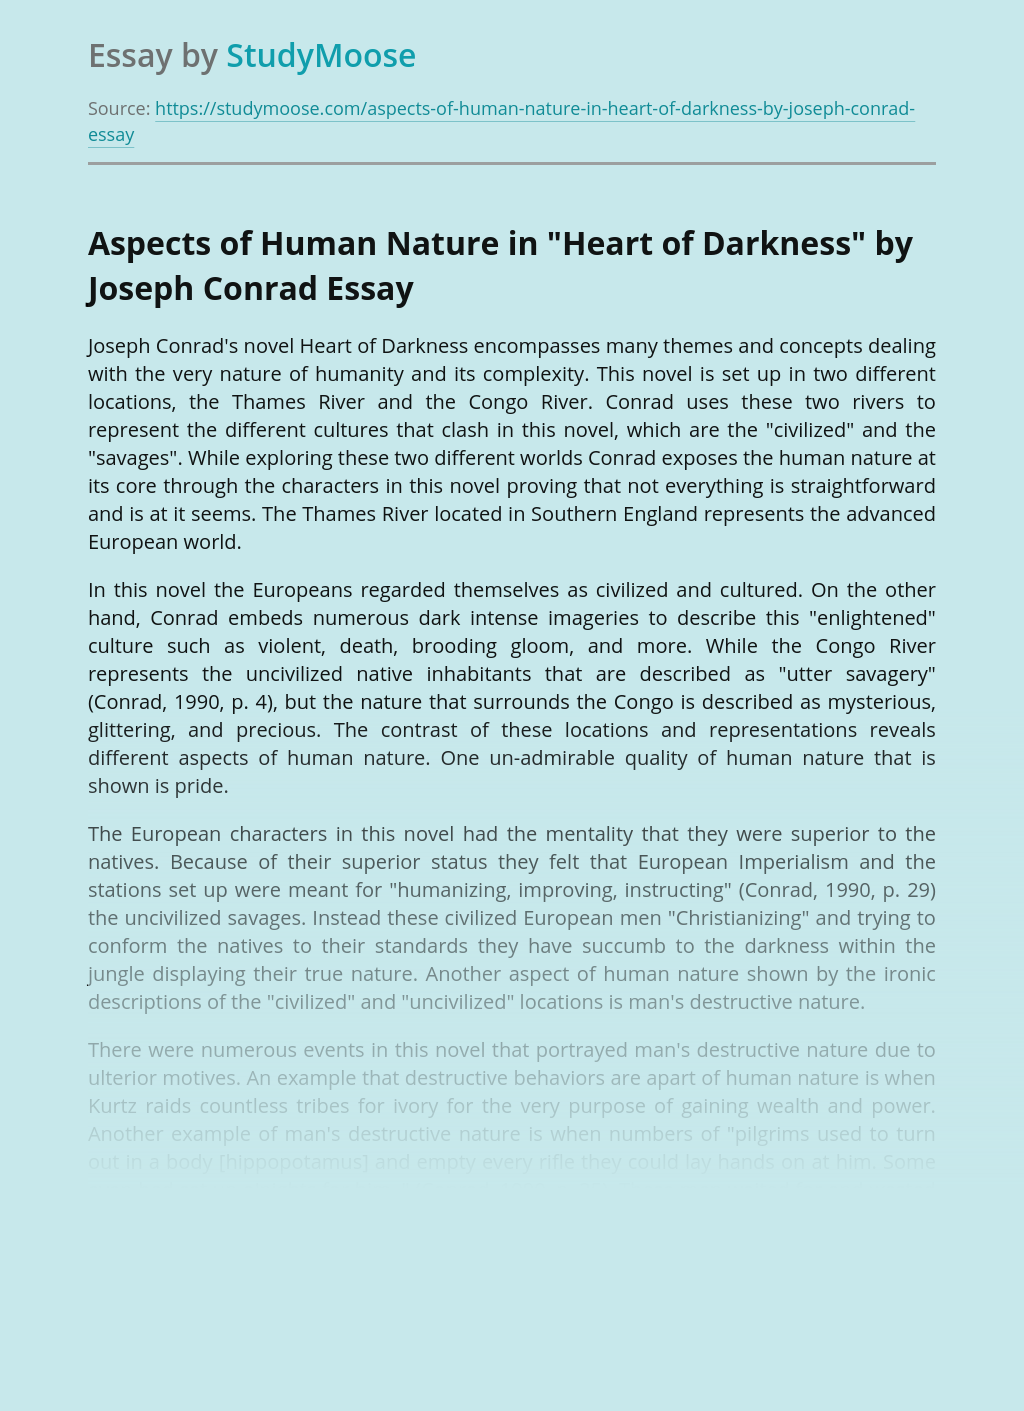 """Aspects of Human Nature in """"Heart of Darkness"""" by Joseph Conrad"""